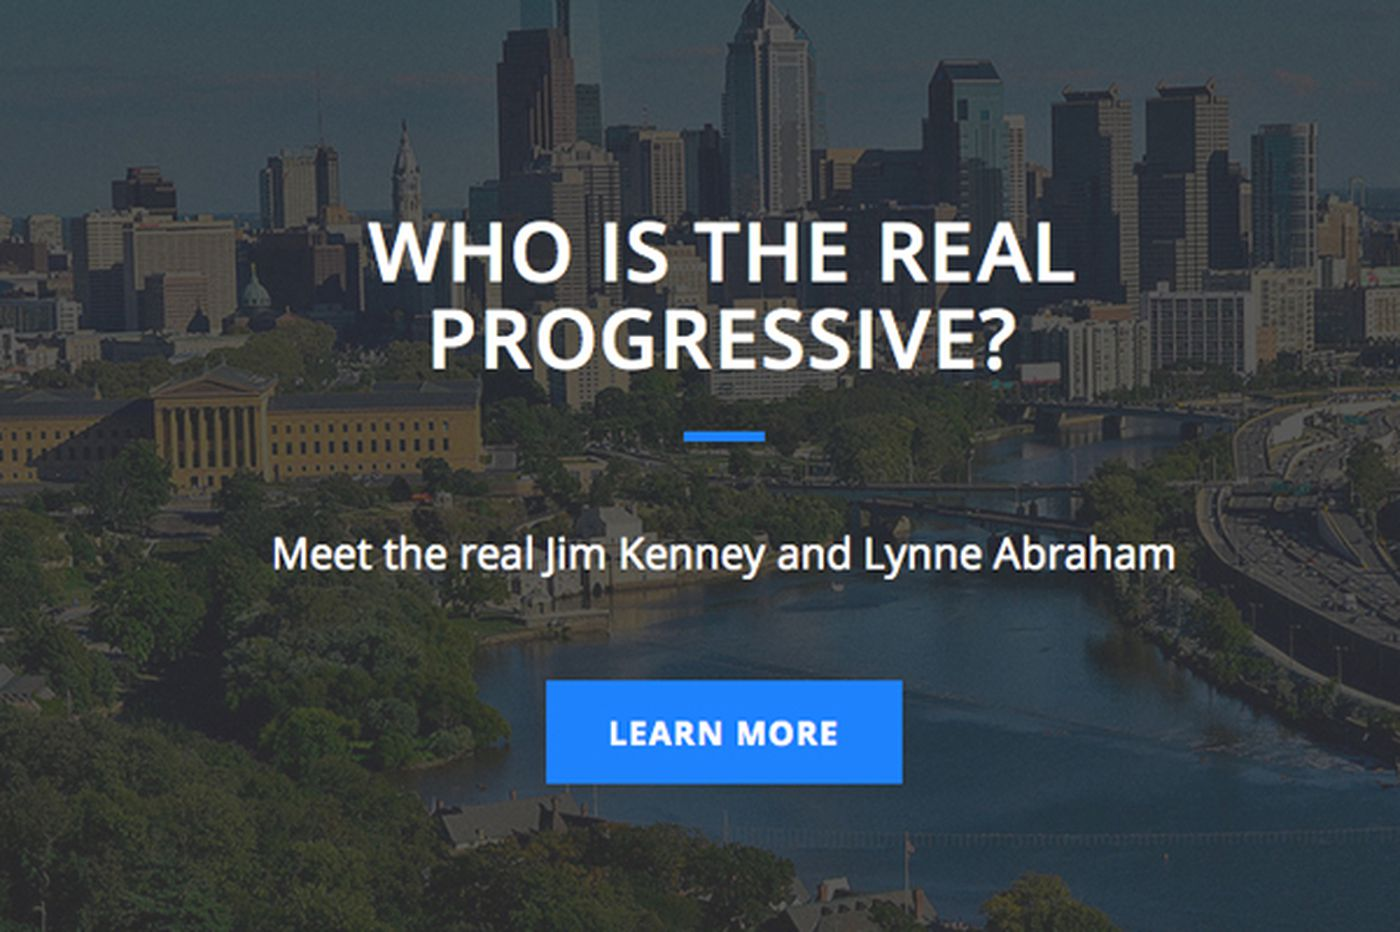 New website by Williams campaign takes shots at Kenney, Abraham